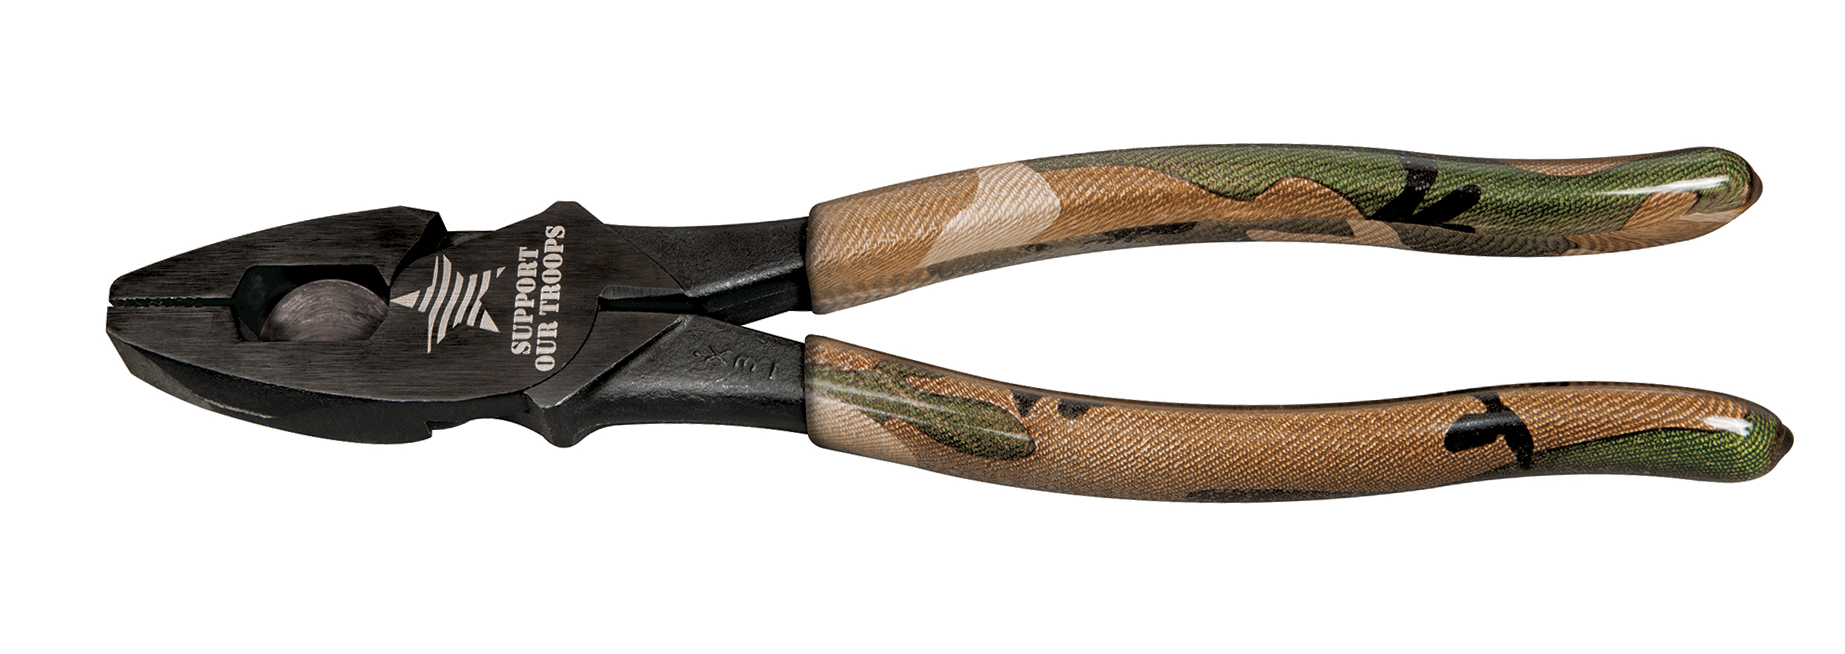 camouflage side cutting pliers